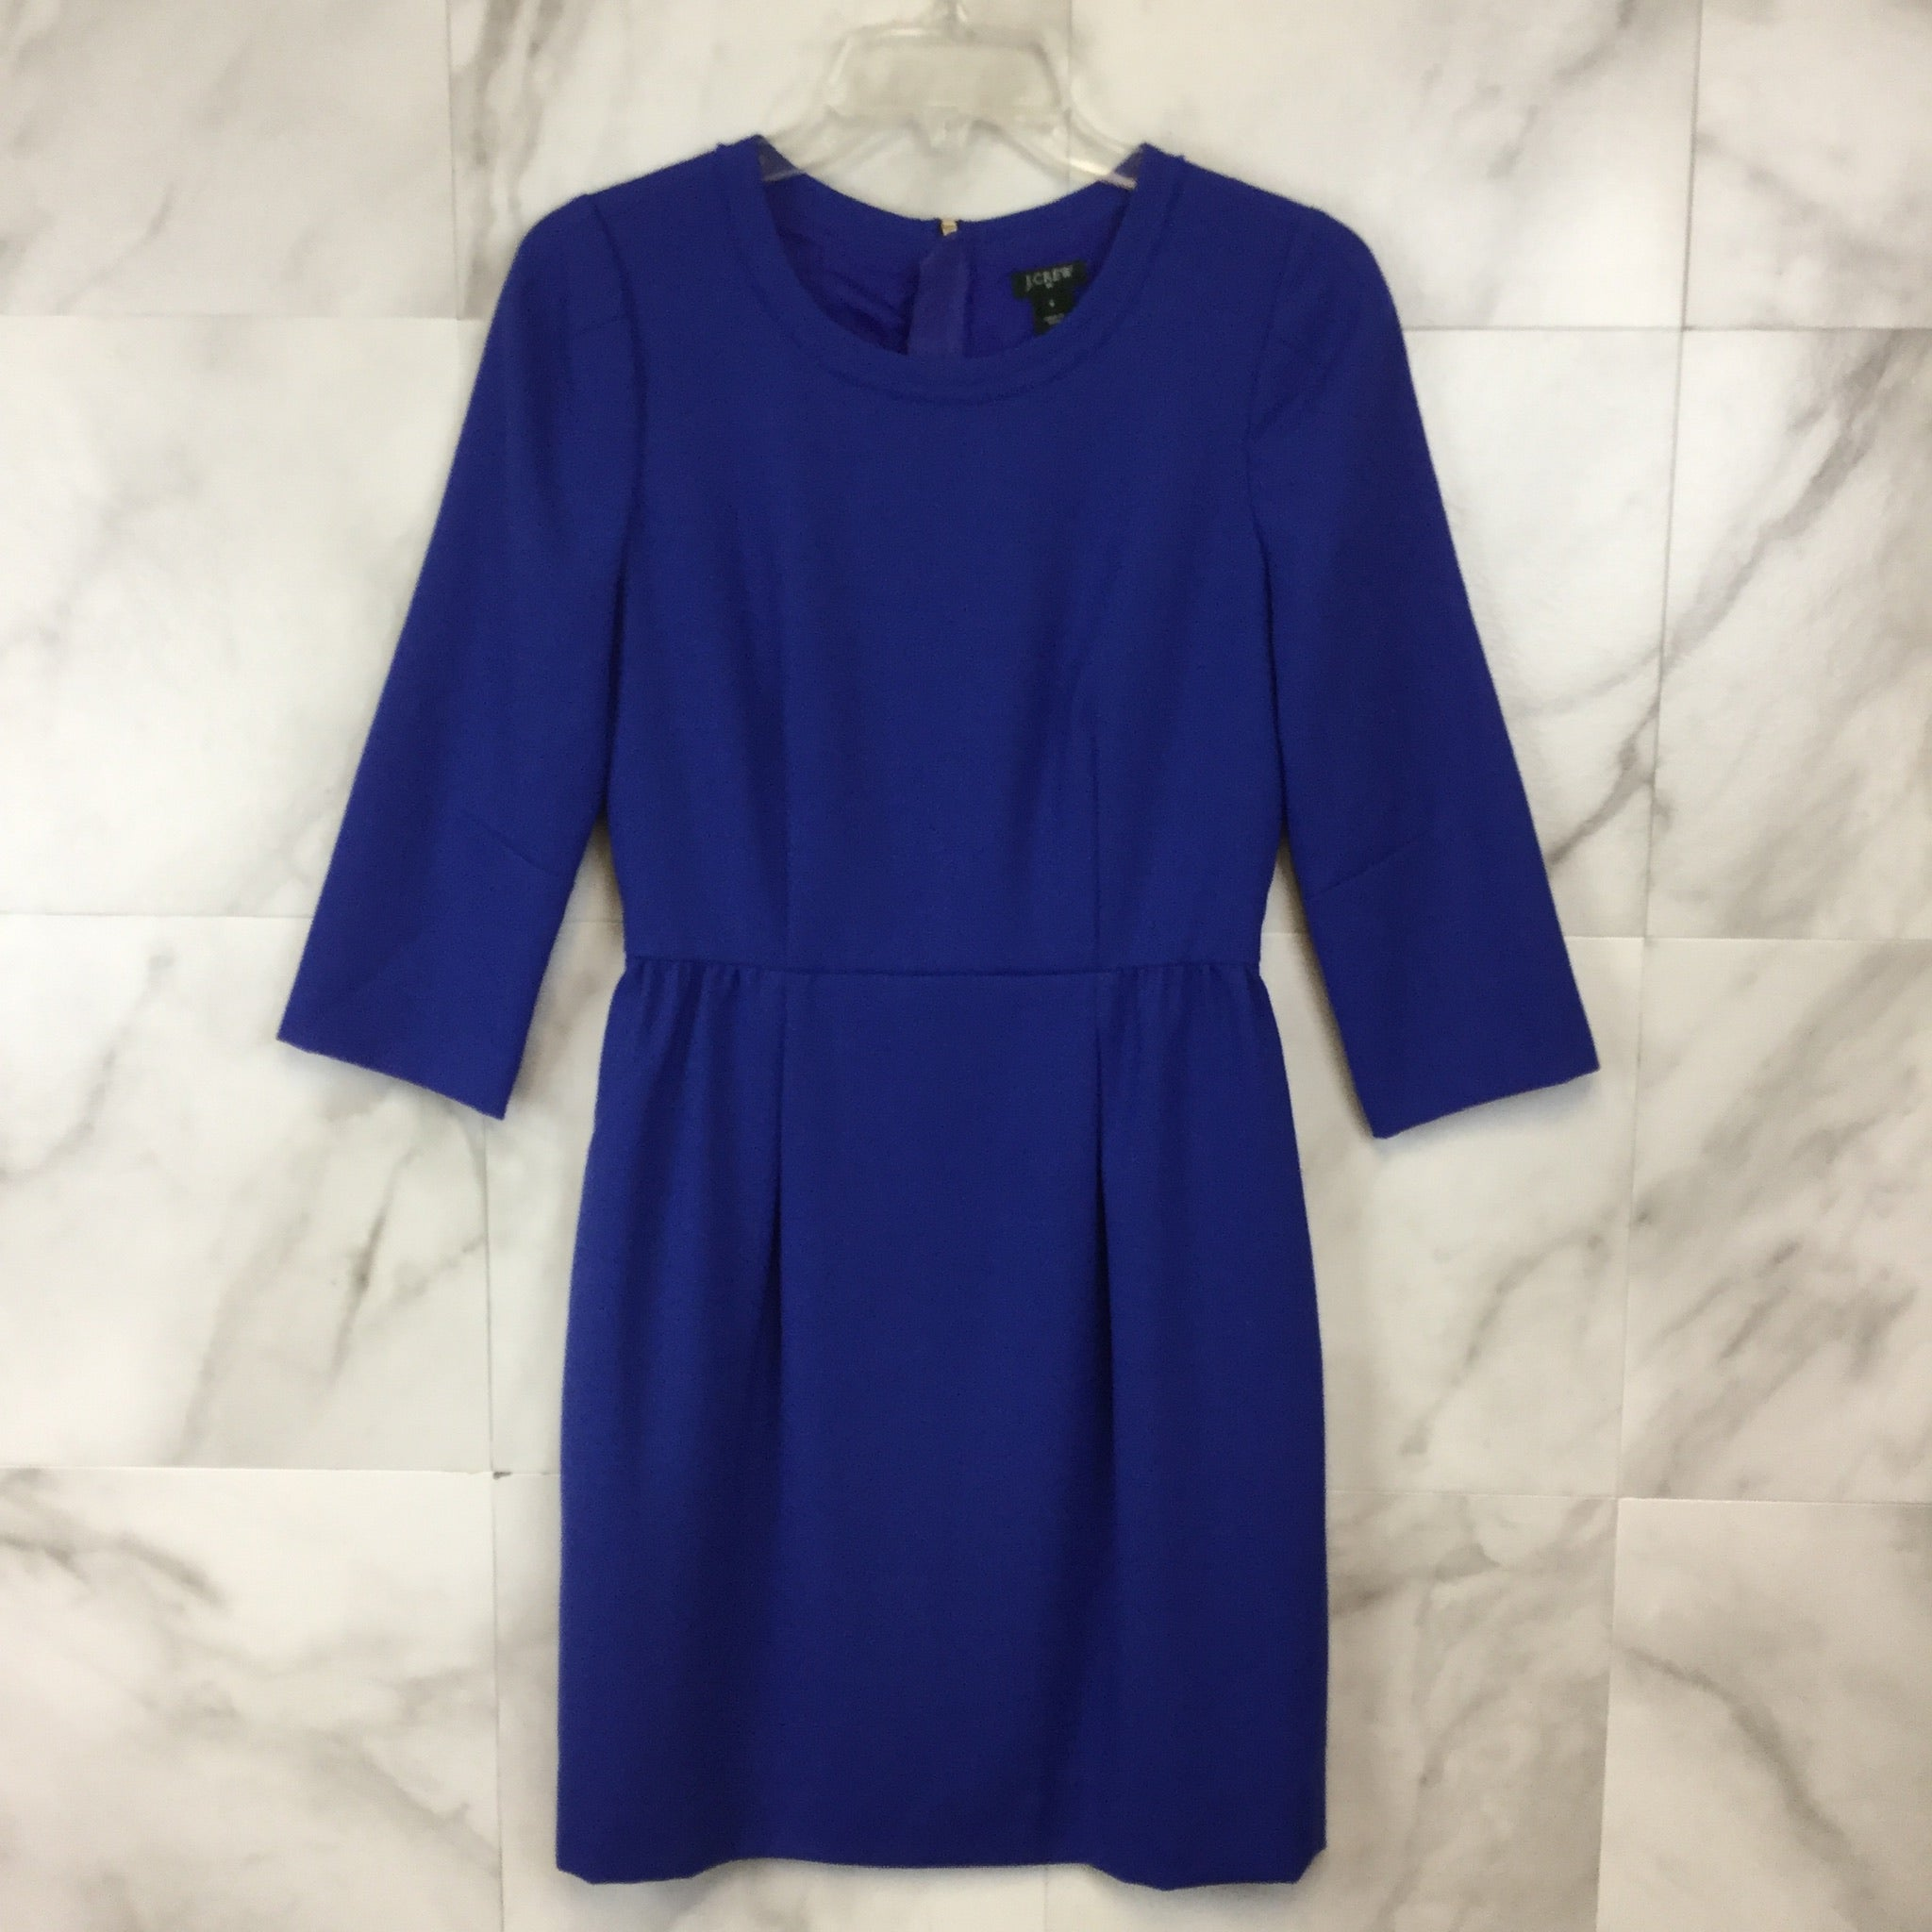 J. Crew Teddie Dress - Size 0